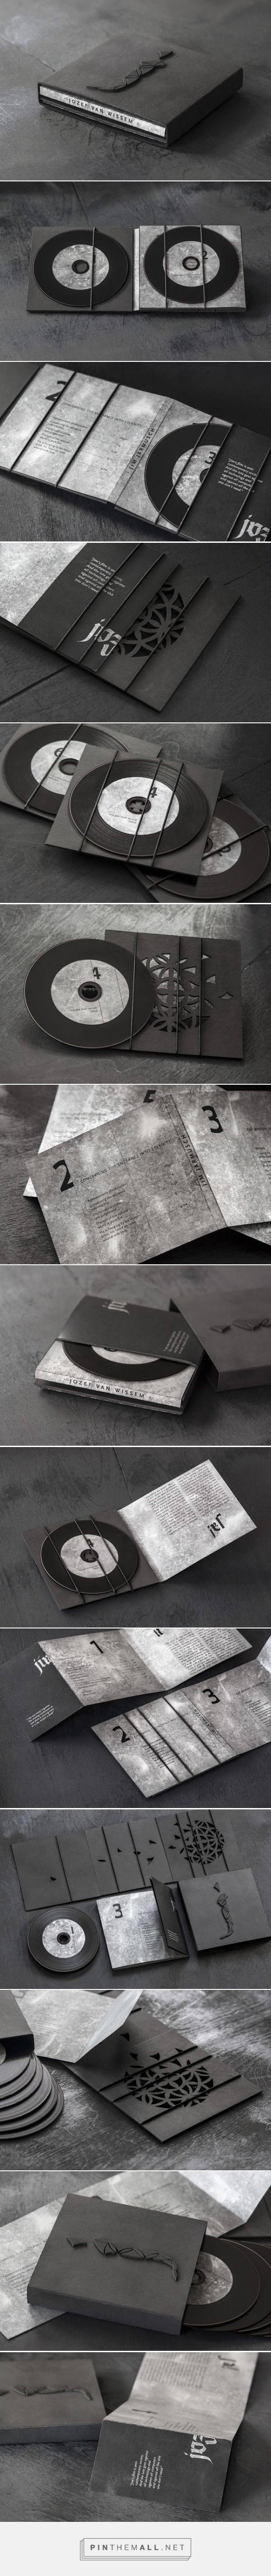 Jozef Van Wissem & Jim Jarmusch Box Set (Student Project) on Packaging of the World - Creative Package Design Gallery  - http://www.packagingoftheworld.com/2015/03/jozef-van-wissem-jim-jarmusch-box-set.html